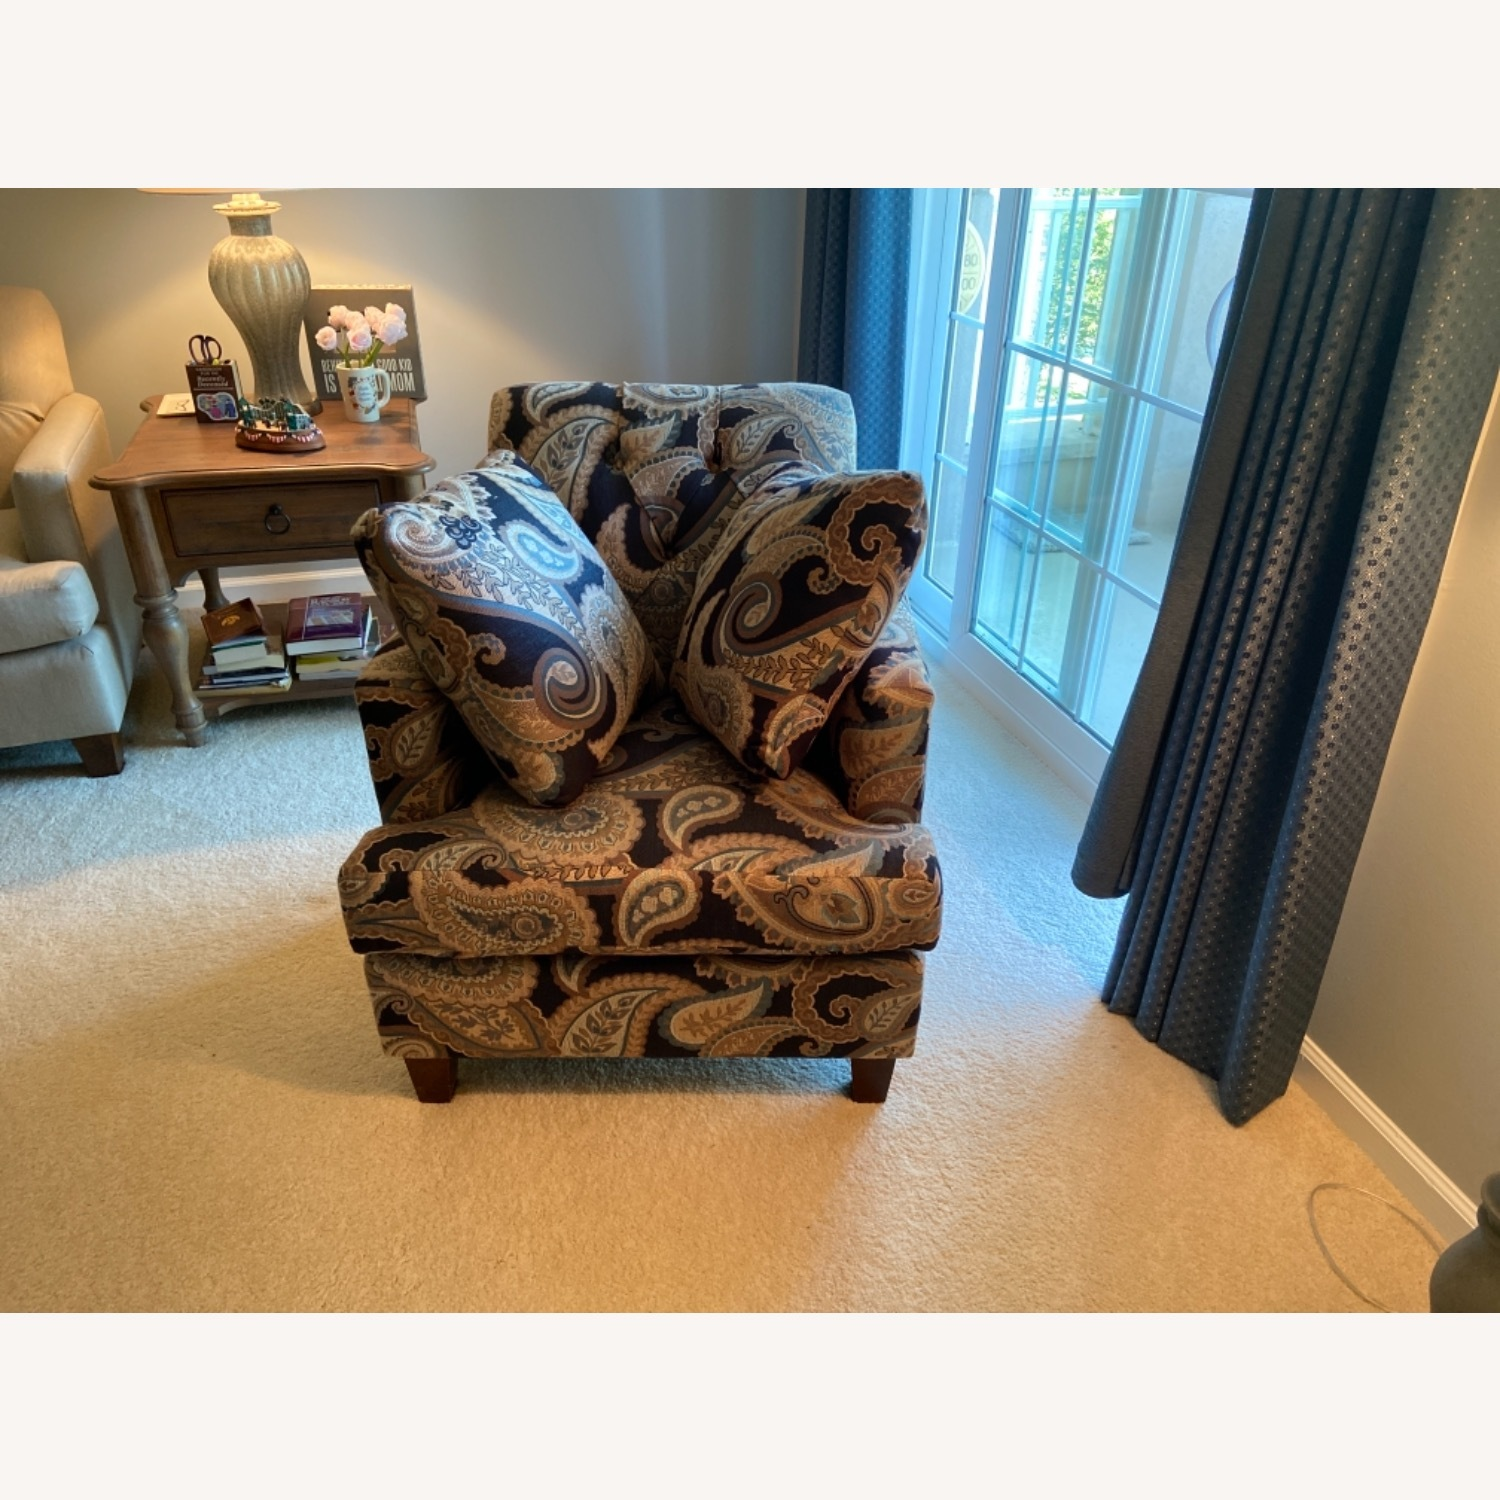 Blue Patterned Chair with Matching Pillows - image-2